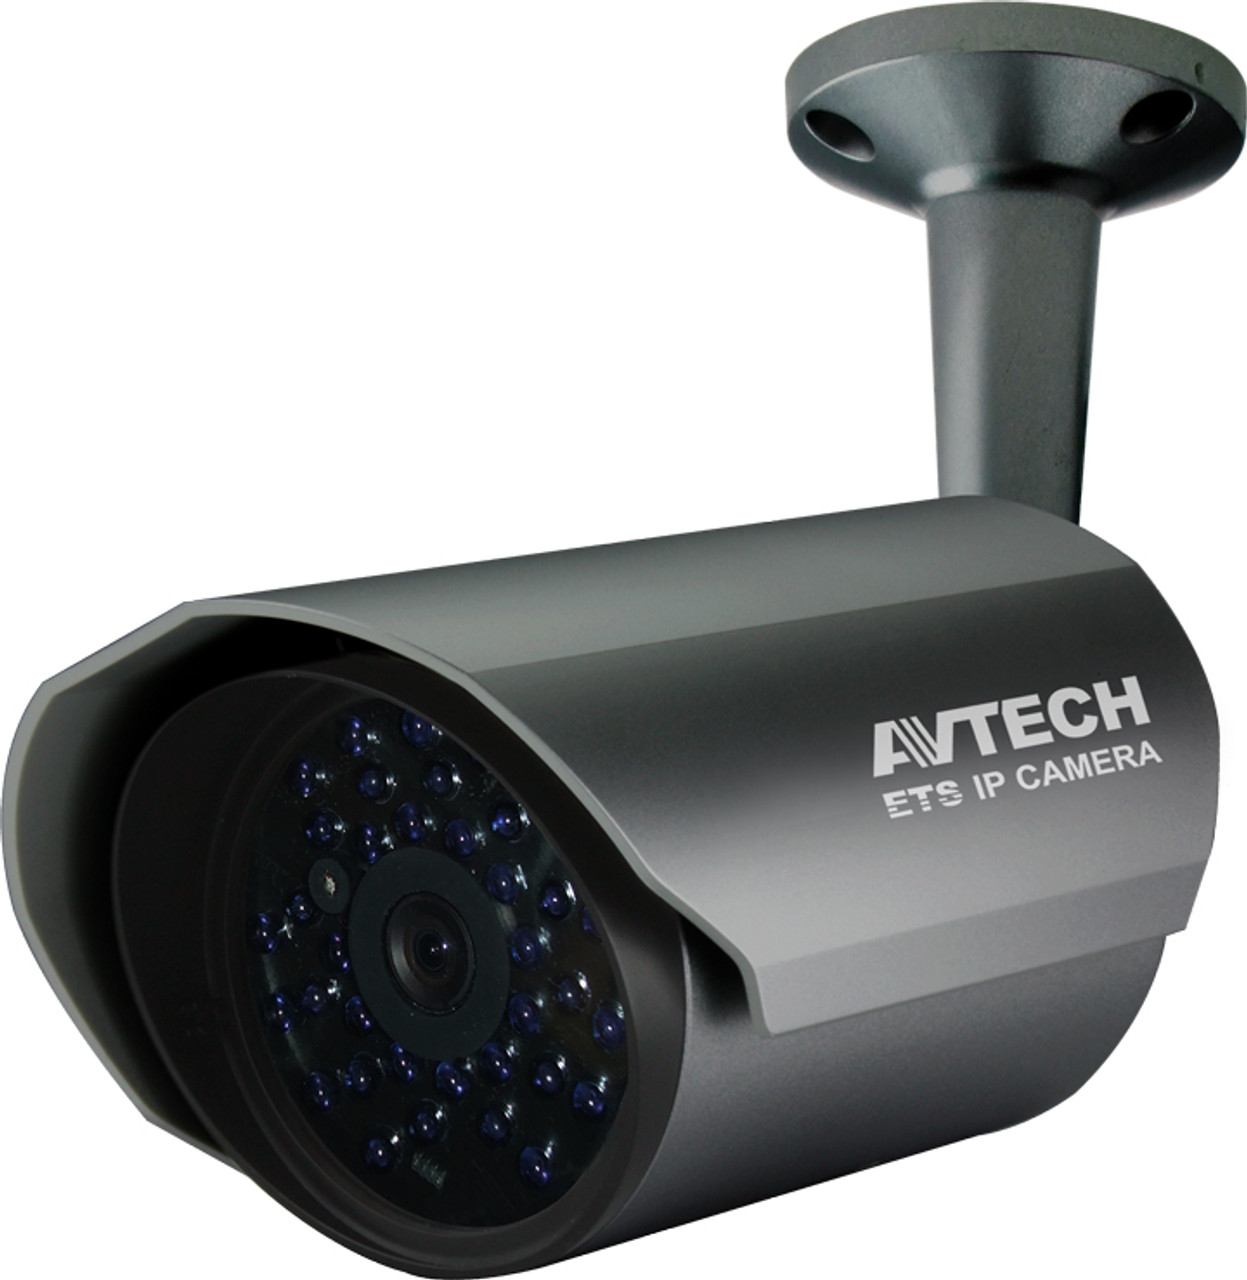 AVTECH AVN807A IP Camera Driver Download